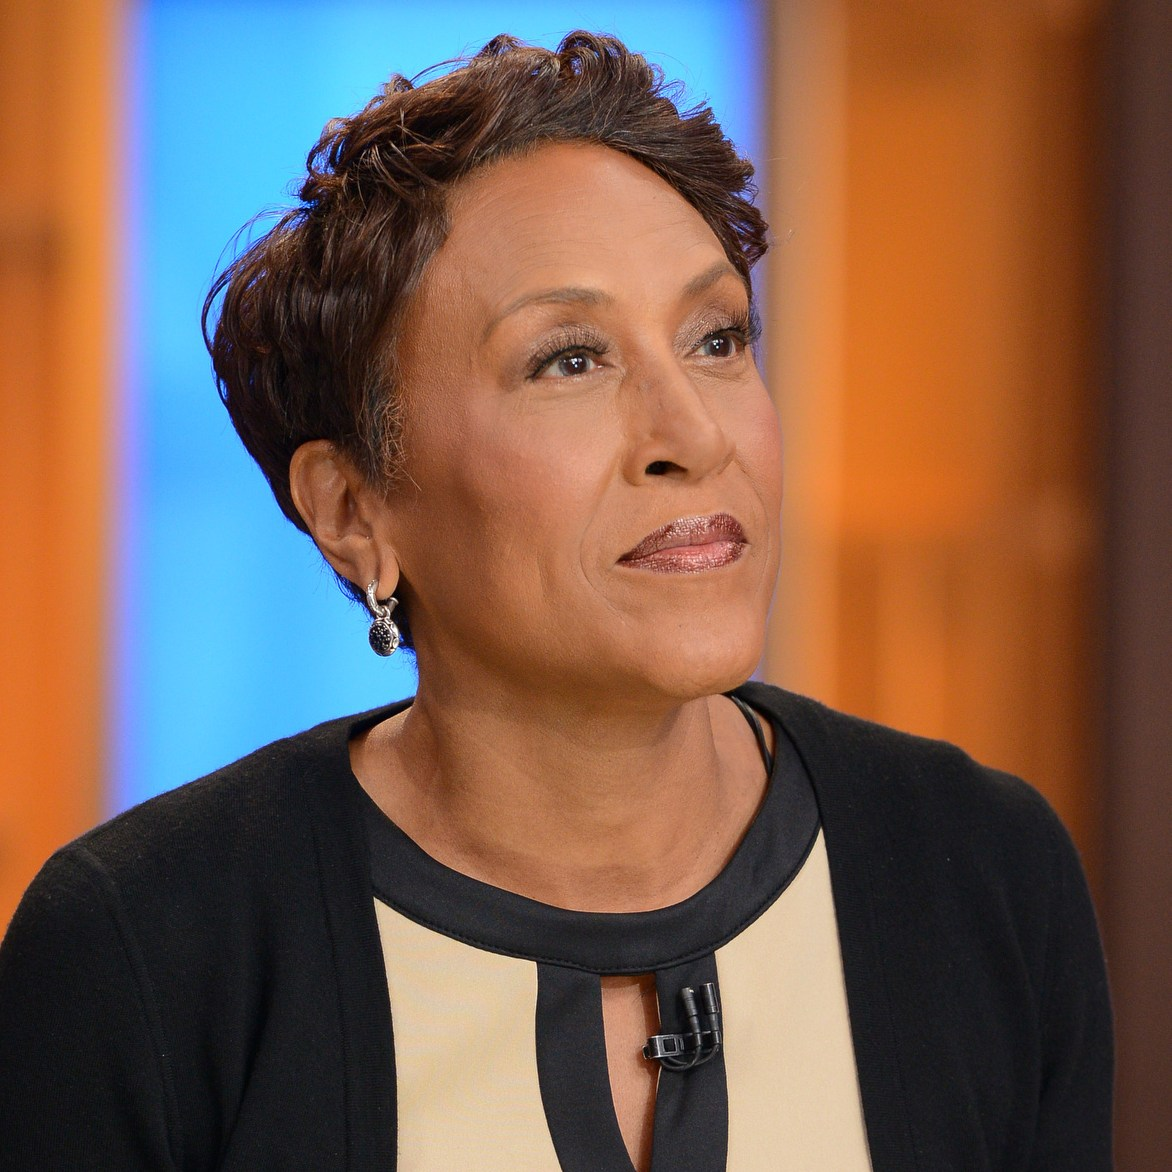 Robin Roberts on Good Morning America